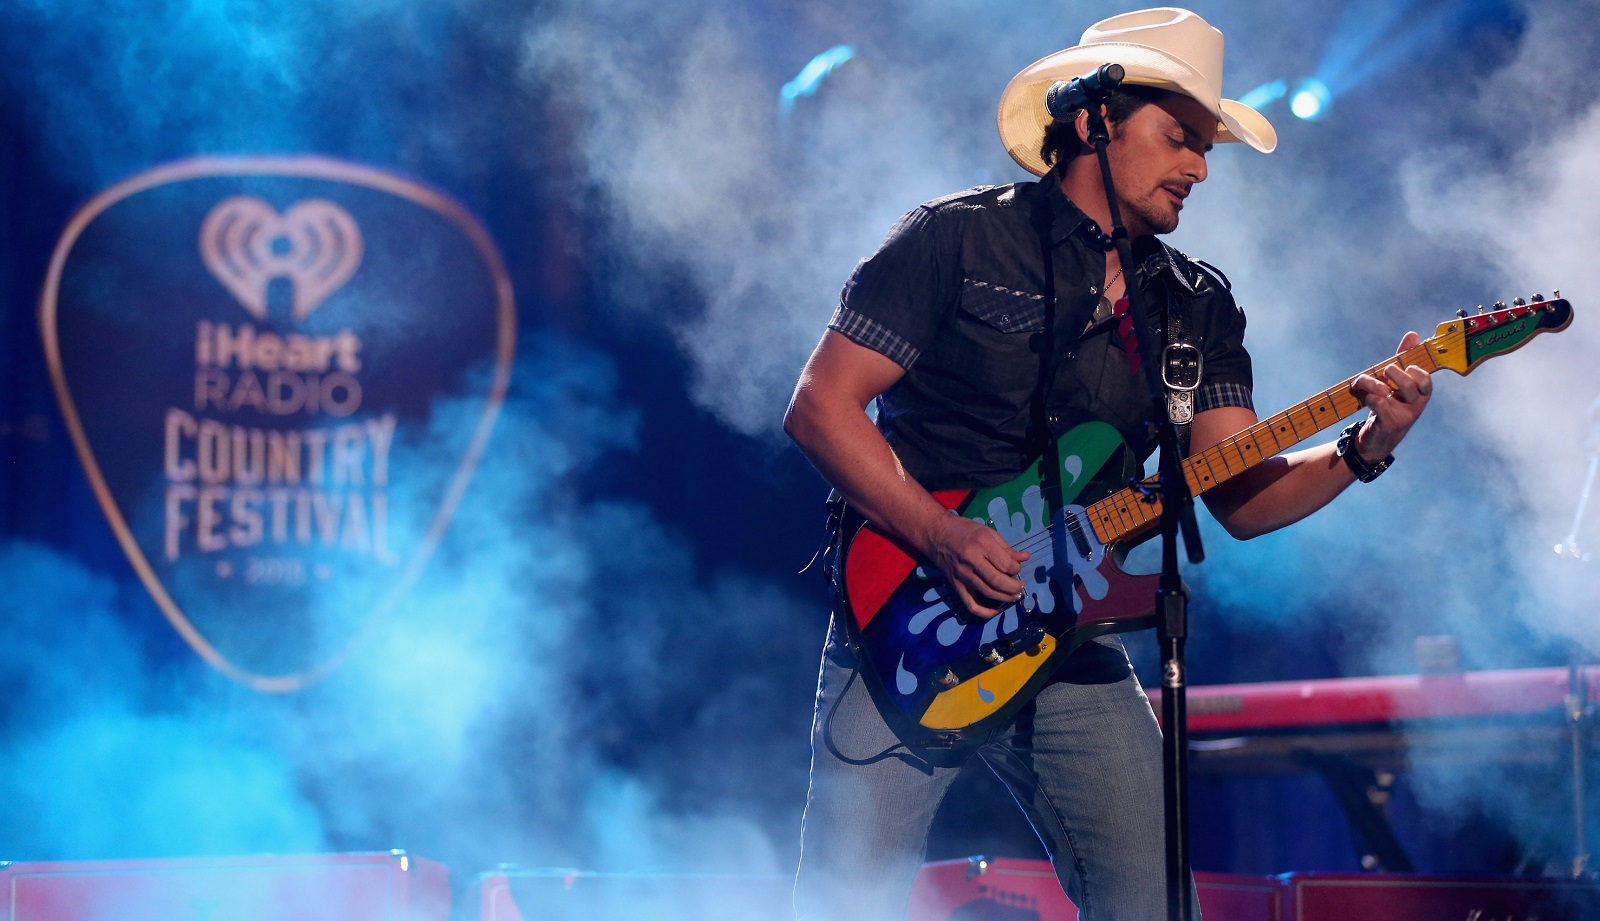 Brad Paisley concert on Sunday at Darien Lake could be really wet, but also really fun. (Getty Images)